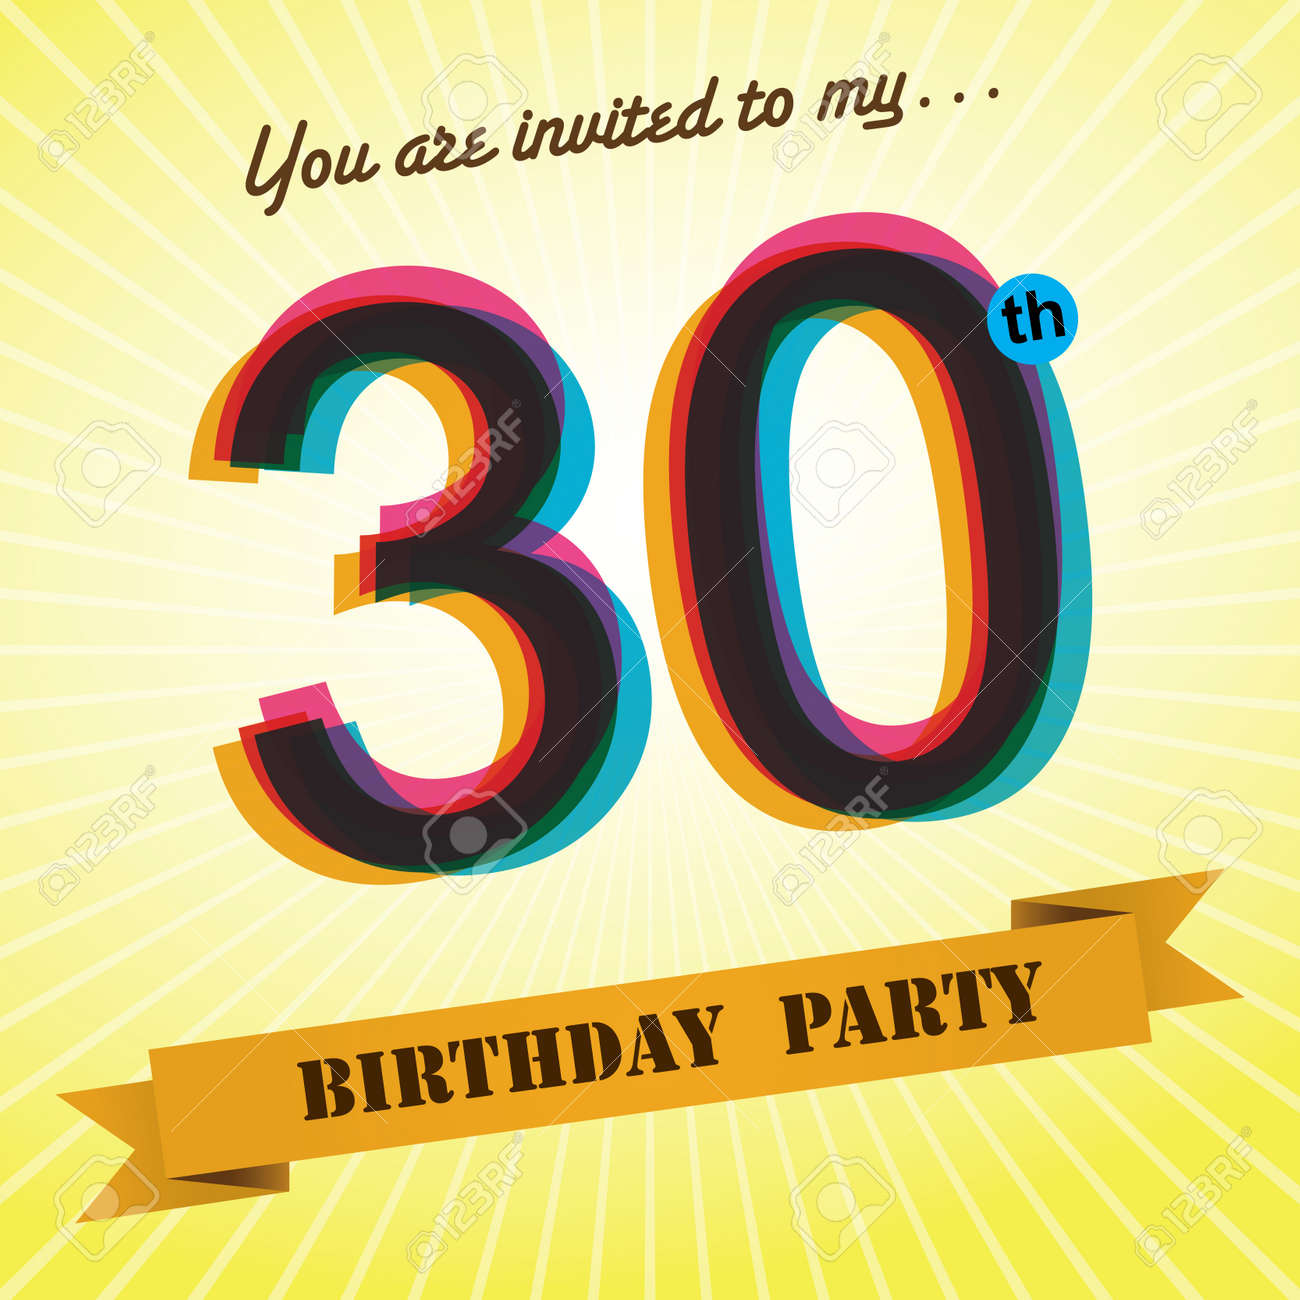 30th Birthday Party Invite Template Design Retro Style